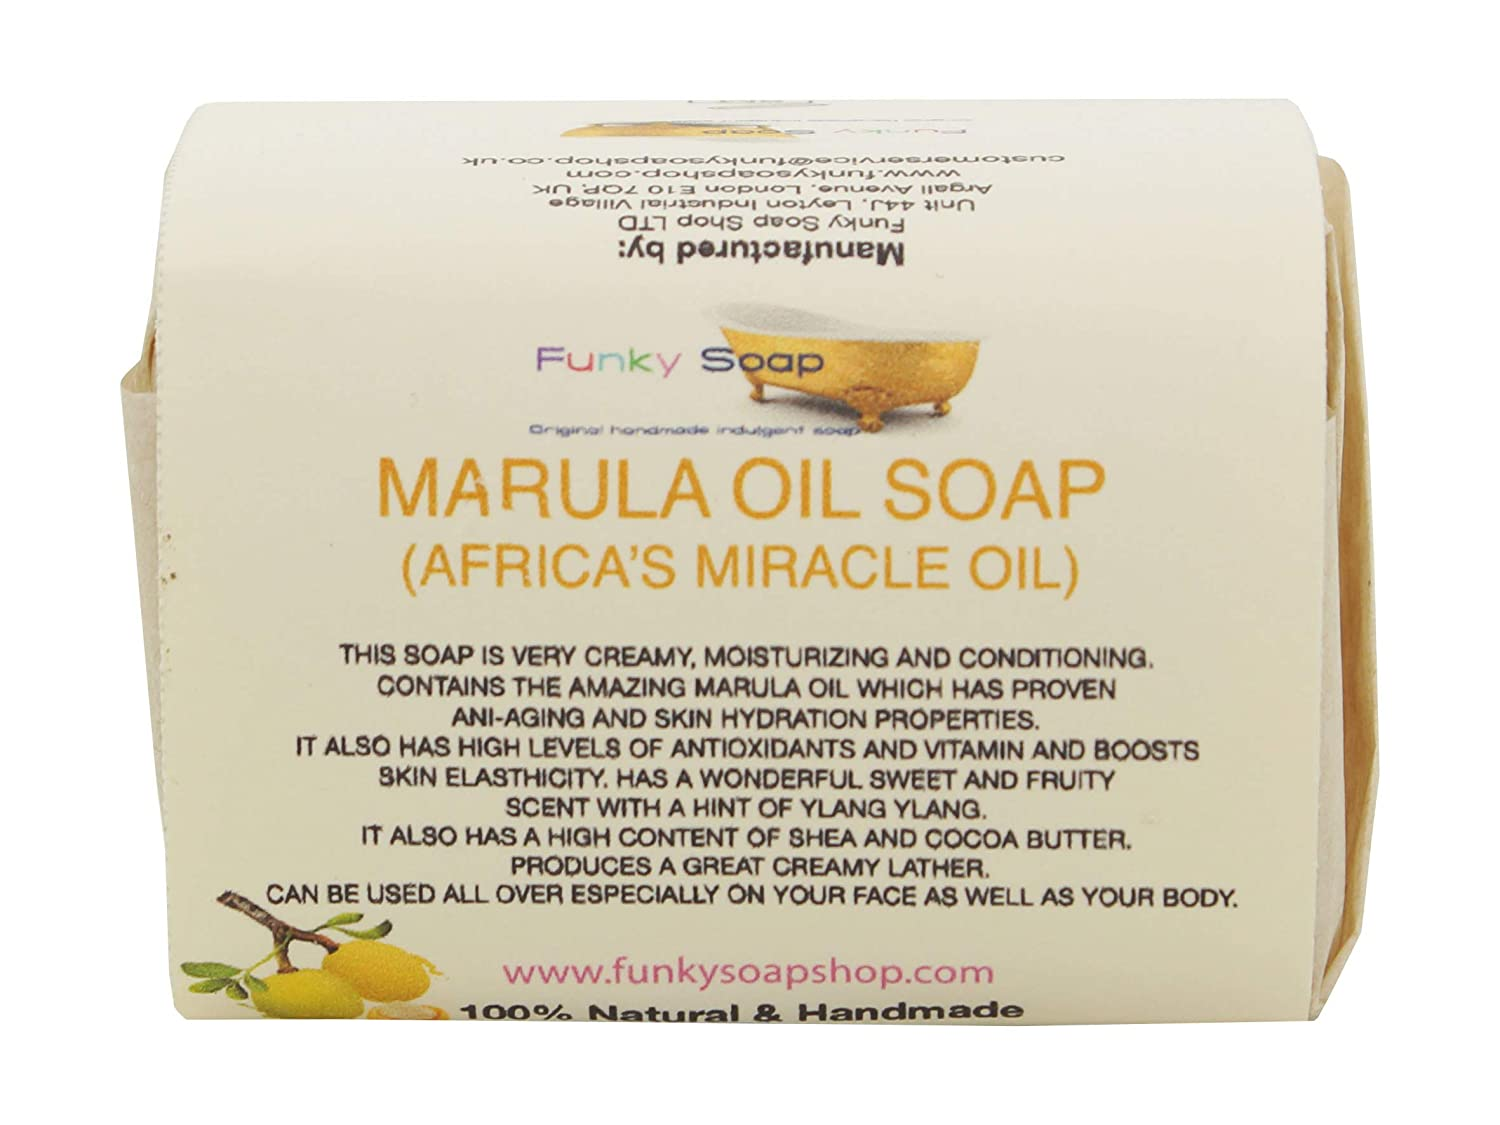 1 piece Marula (Africa's Miracle Oil) Soap 100% Natural Handmade 120g Funky Soap Marula Oil Soap